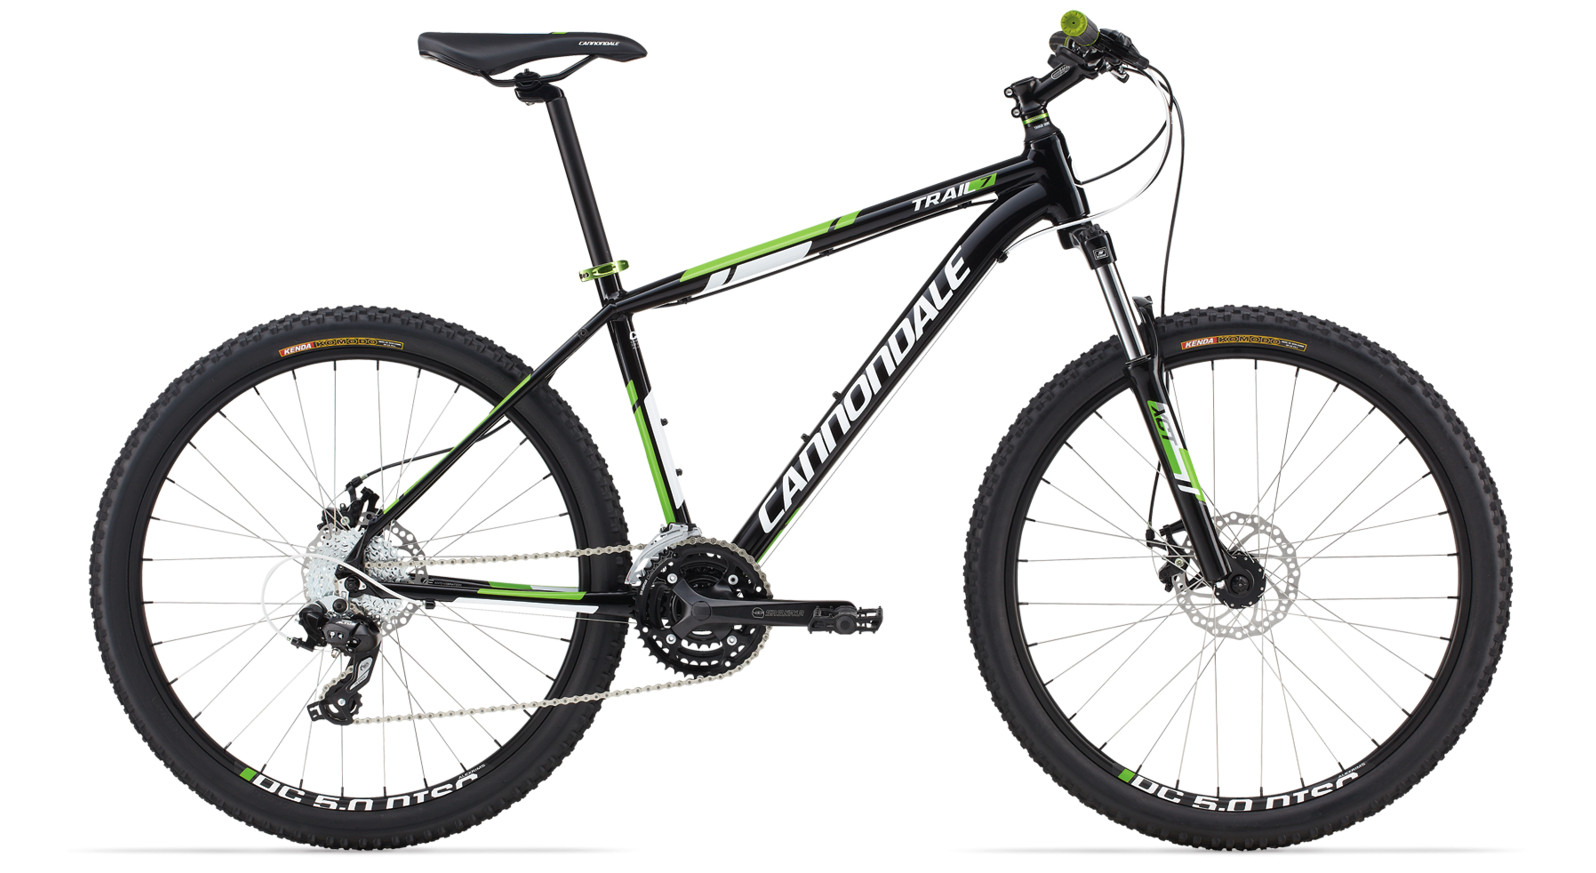 bike - 2014 Cannondale Trail 7